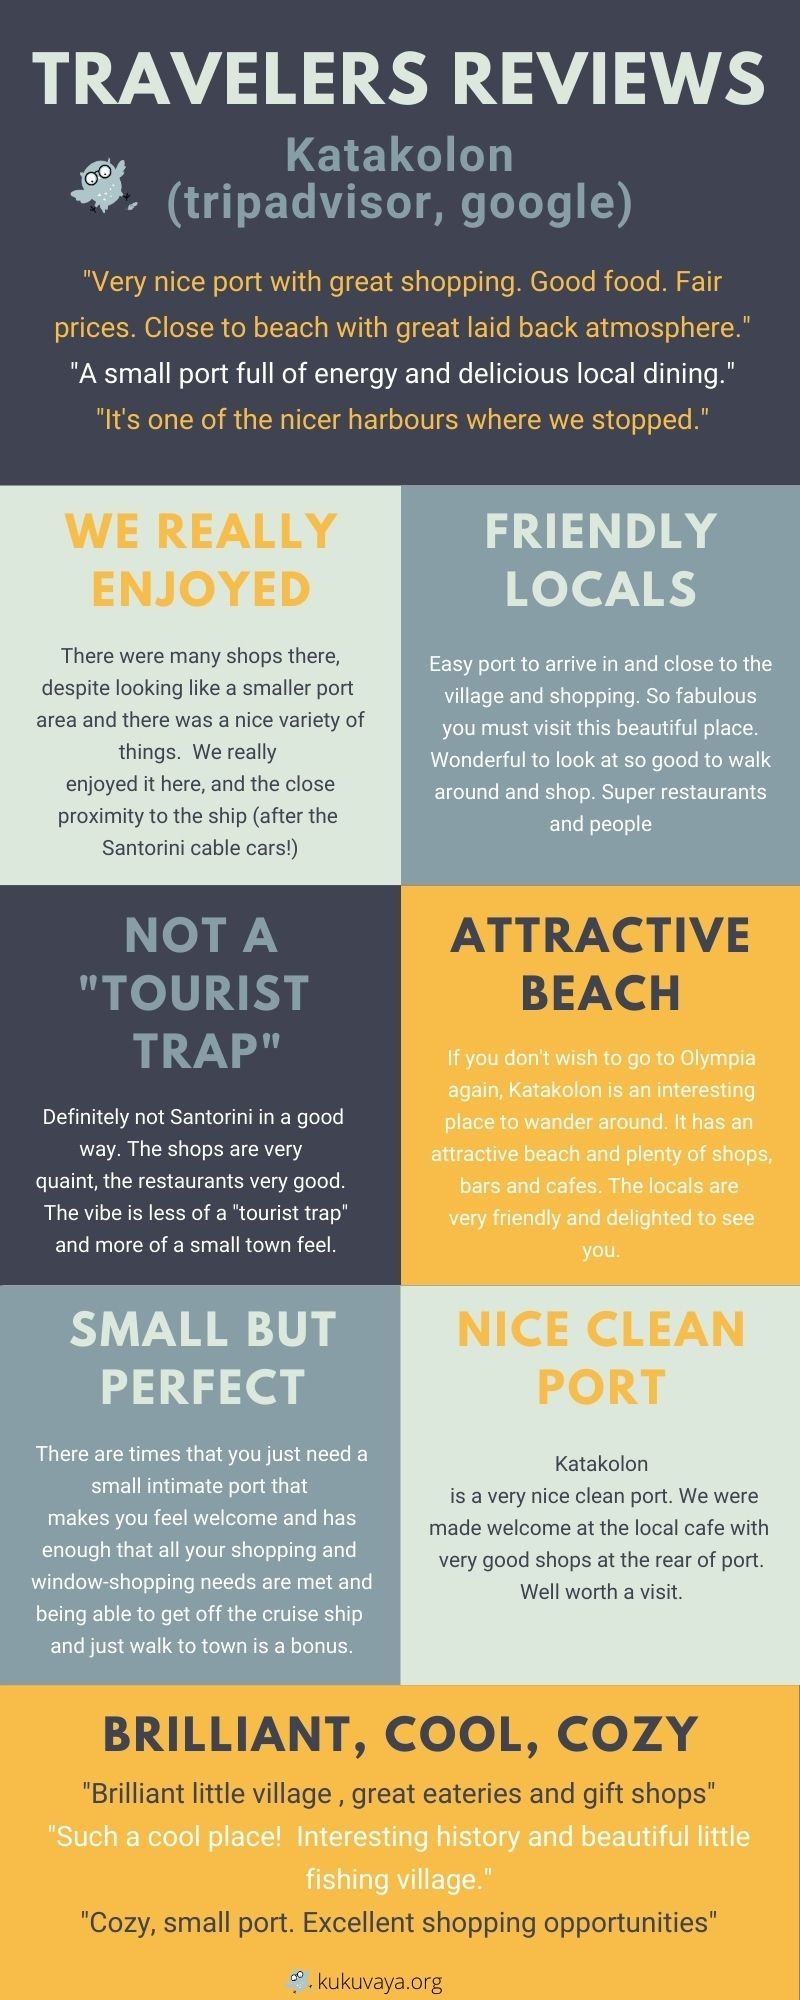 Katakolon things to do and reviews infographic